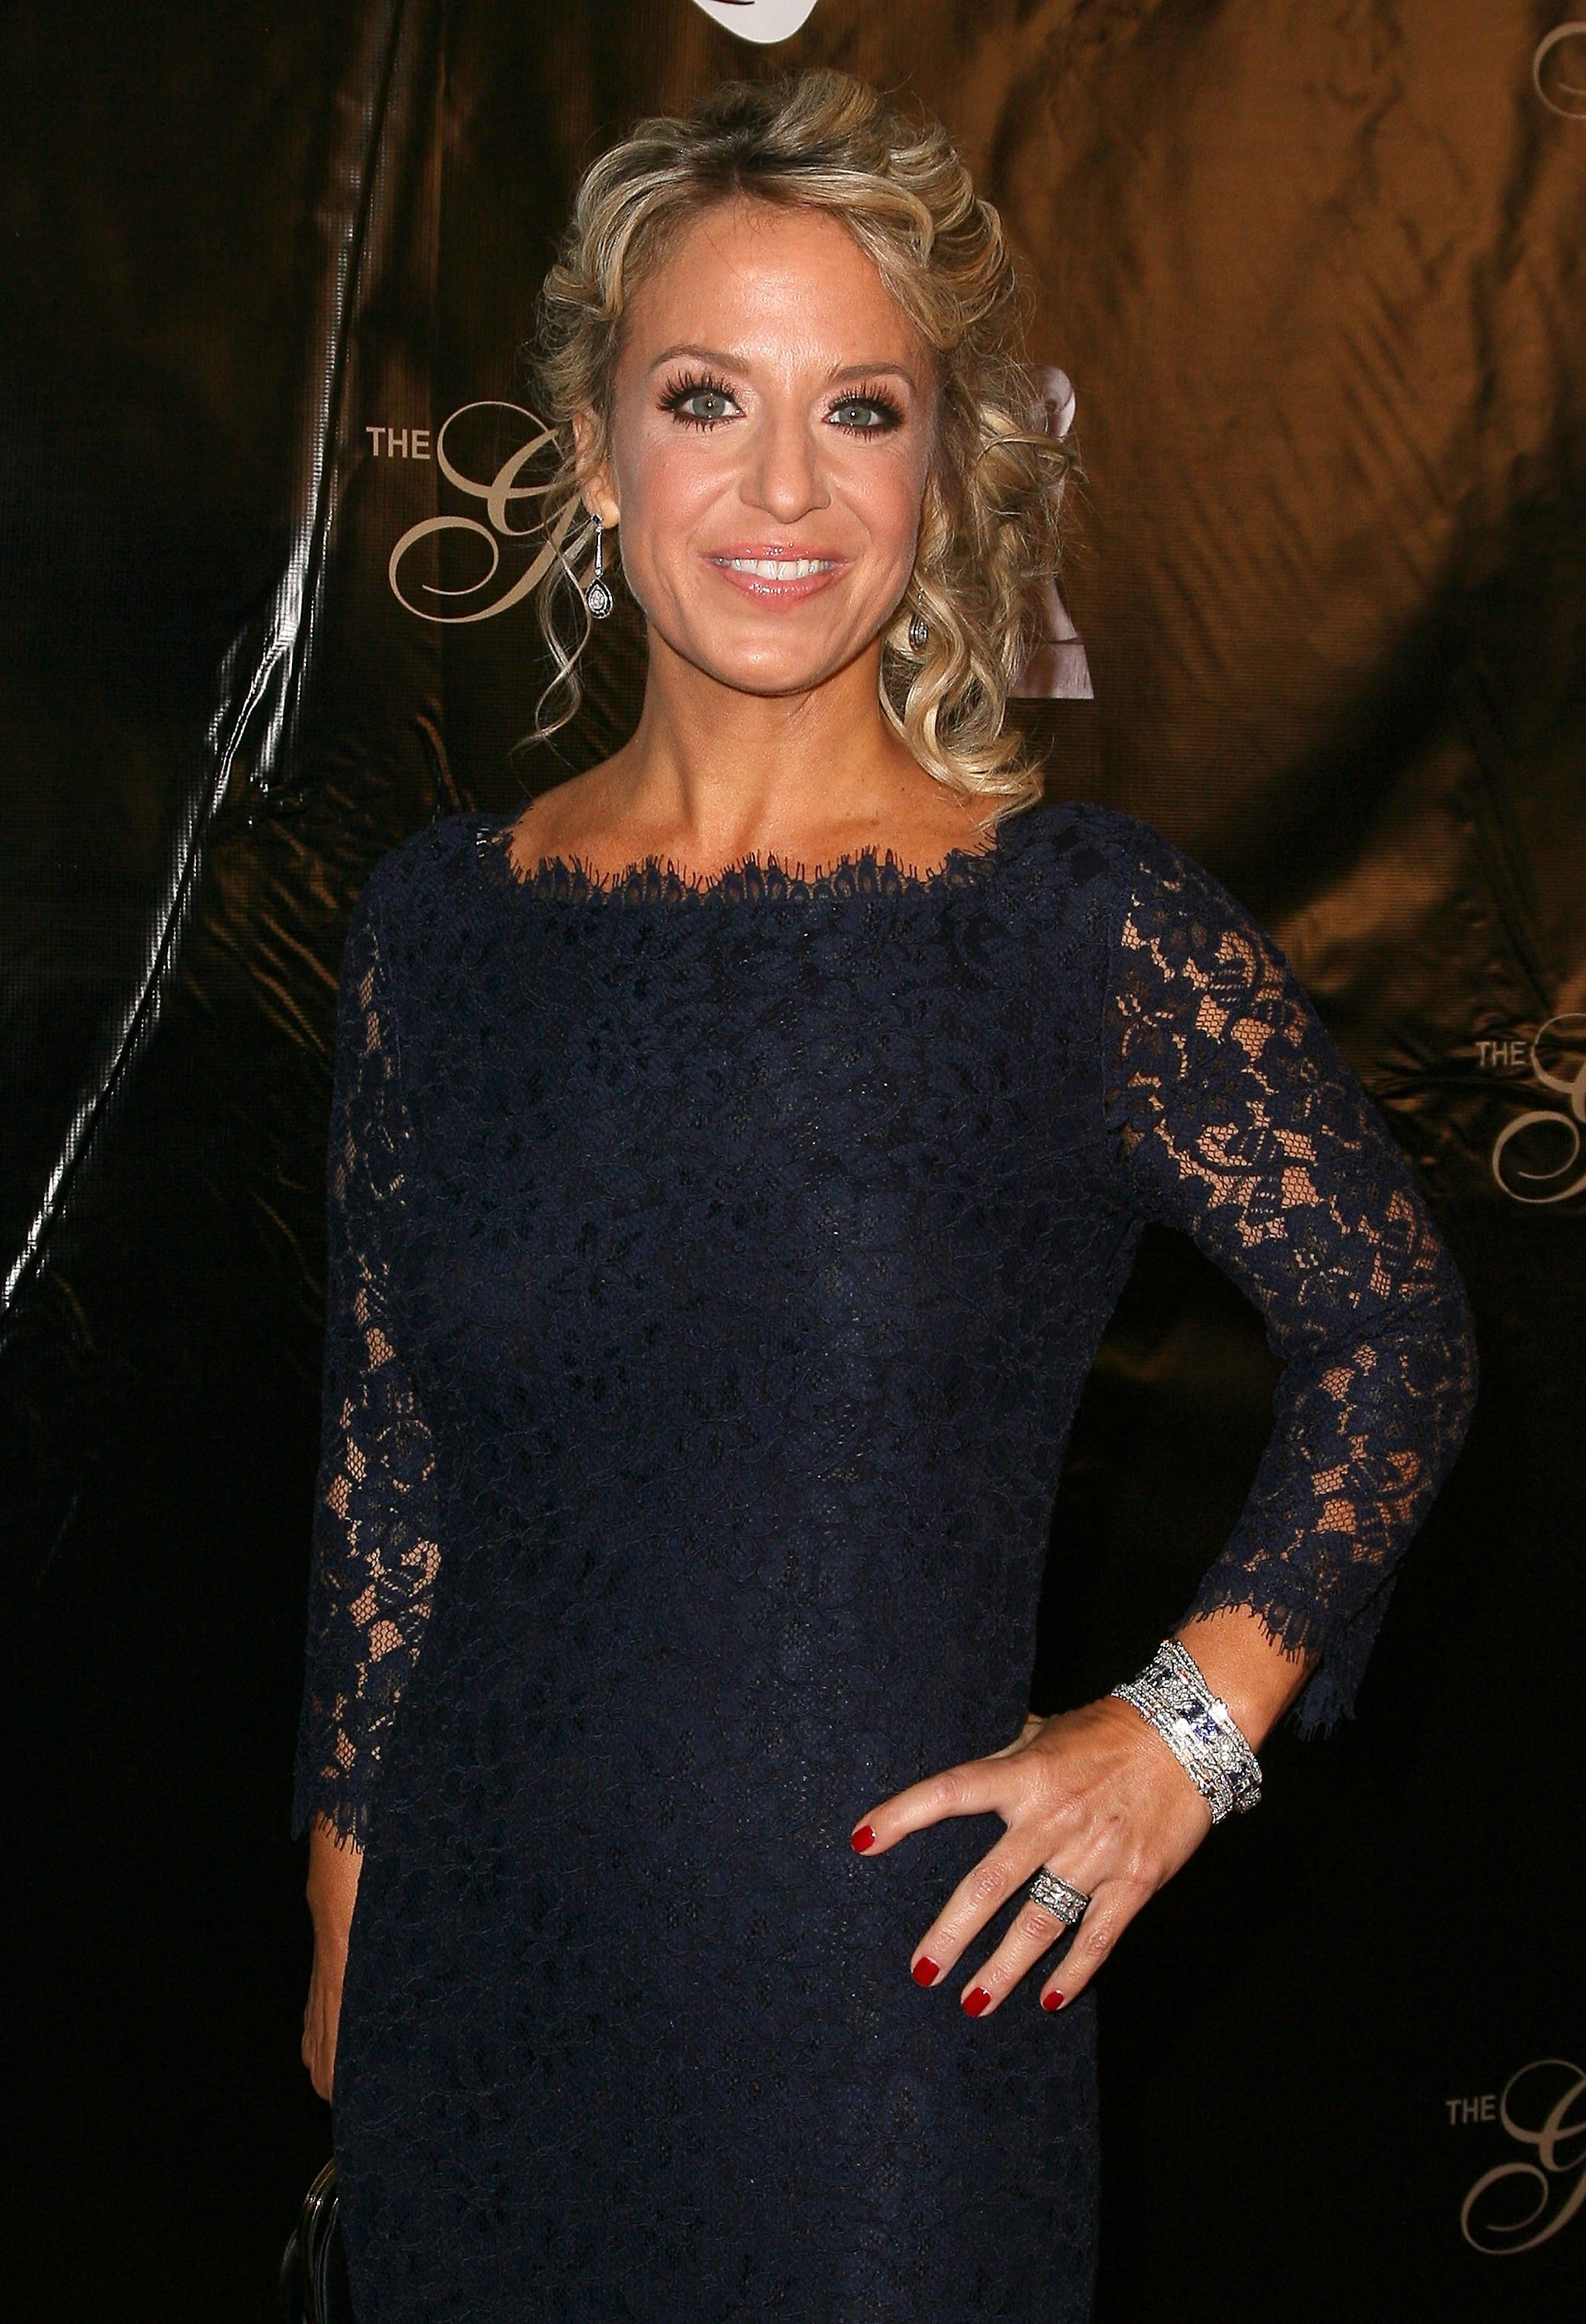 Dr. Laura Berman pictured at the 36th Annual Gracie Awards Gala, 2011, Beverly Hills, California. | Photo: Getty Images